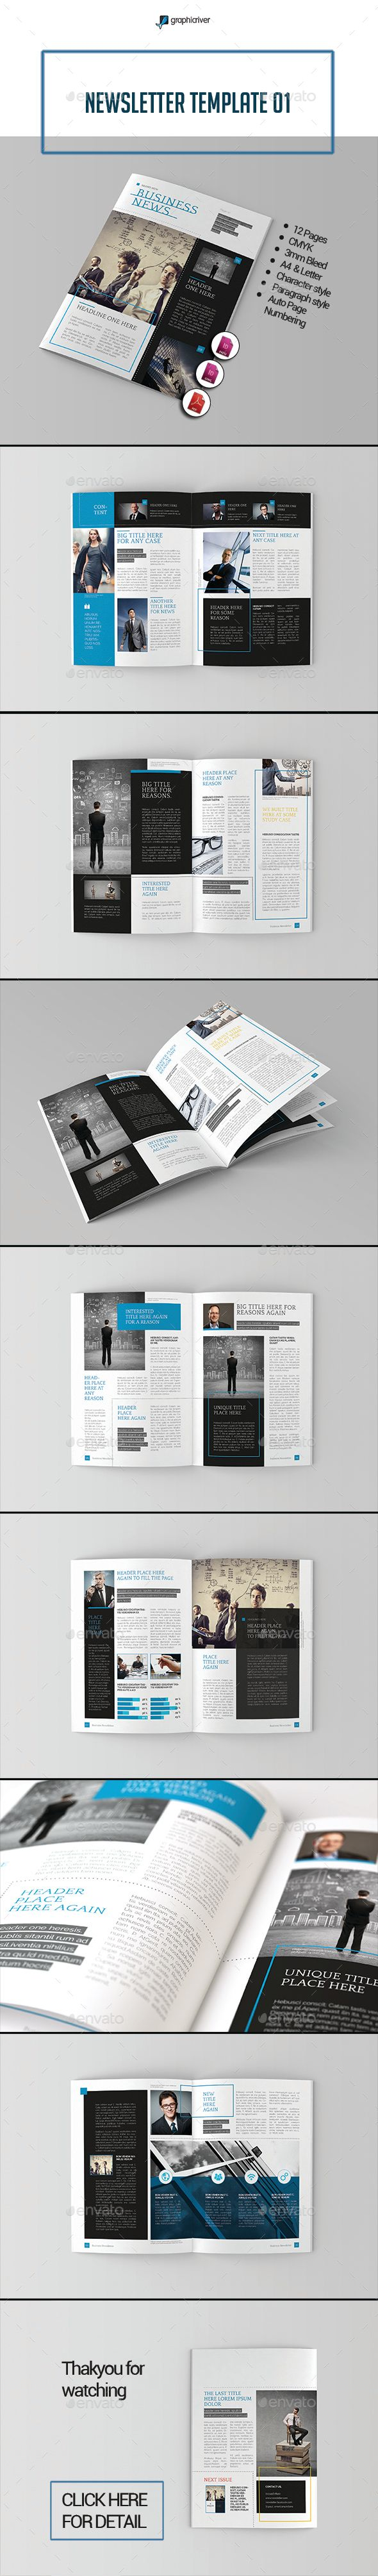 Newsletter Template InDesign INDD #design Download: http://graphicriver.net/item/newsletter-template-01/14048985?ref=ksioks